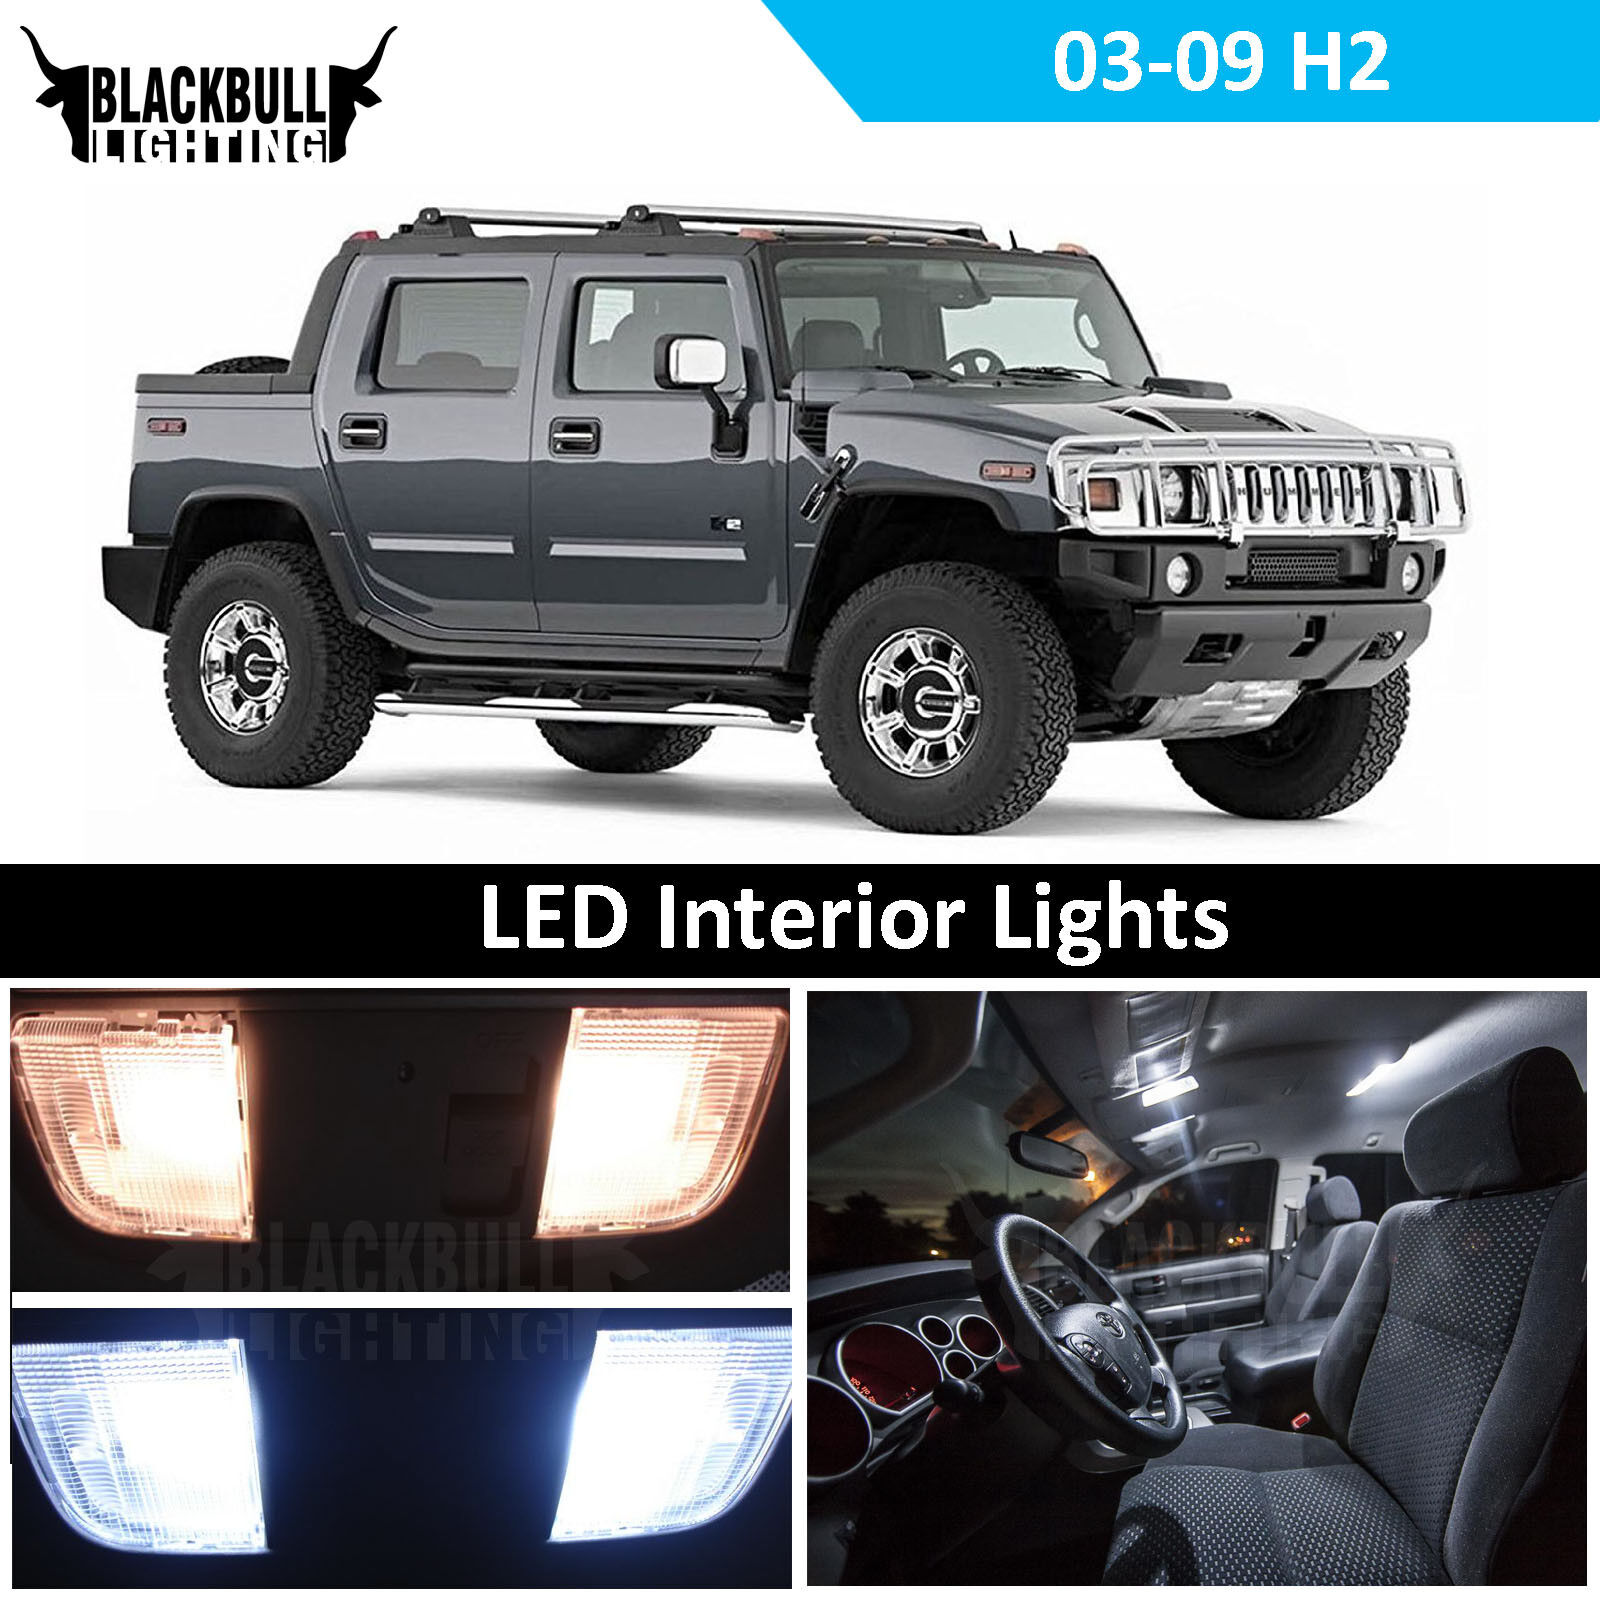 Details about White Interior LED Light Accessories Package Kit for  112-112 Hummer H12 12 Bulb | accessories for h2 hummer